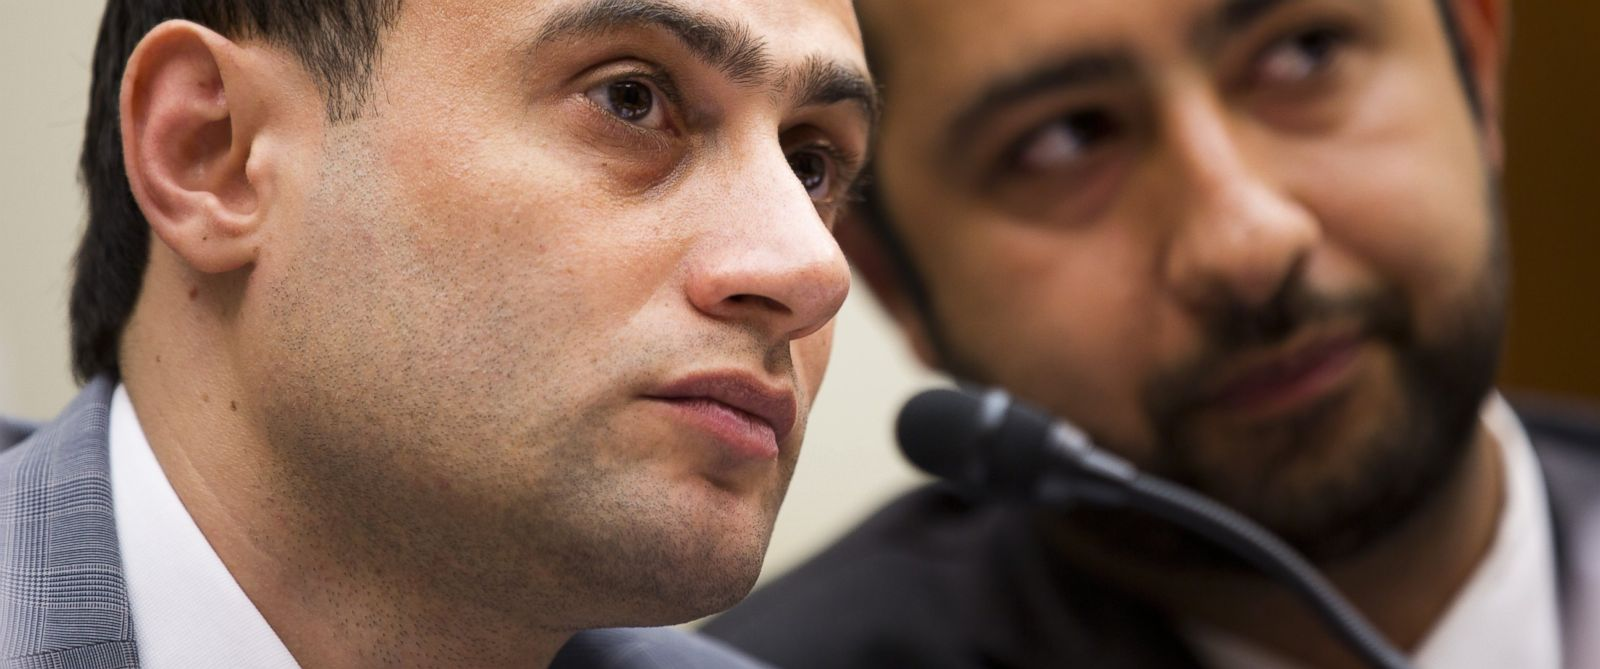 PHOTO: Dr. Mohamed Tennari listens to his translator during a hearing convened by the House Foreign Affairs Committee in Washington, June 17, 2015, to examine the use of chemical weapons in Syria by the Assad regime.